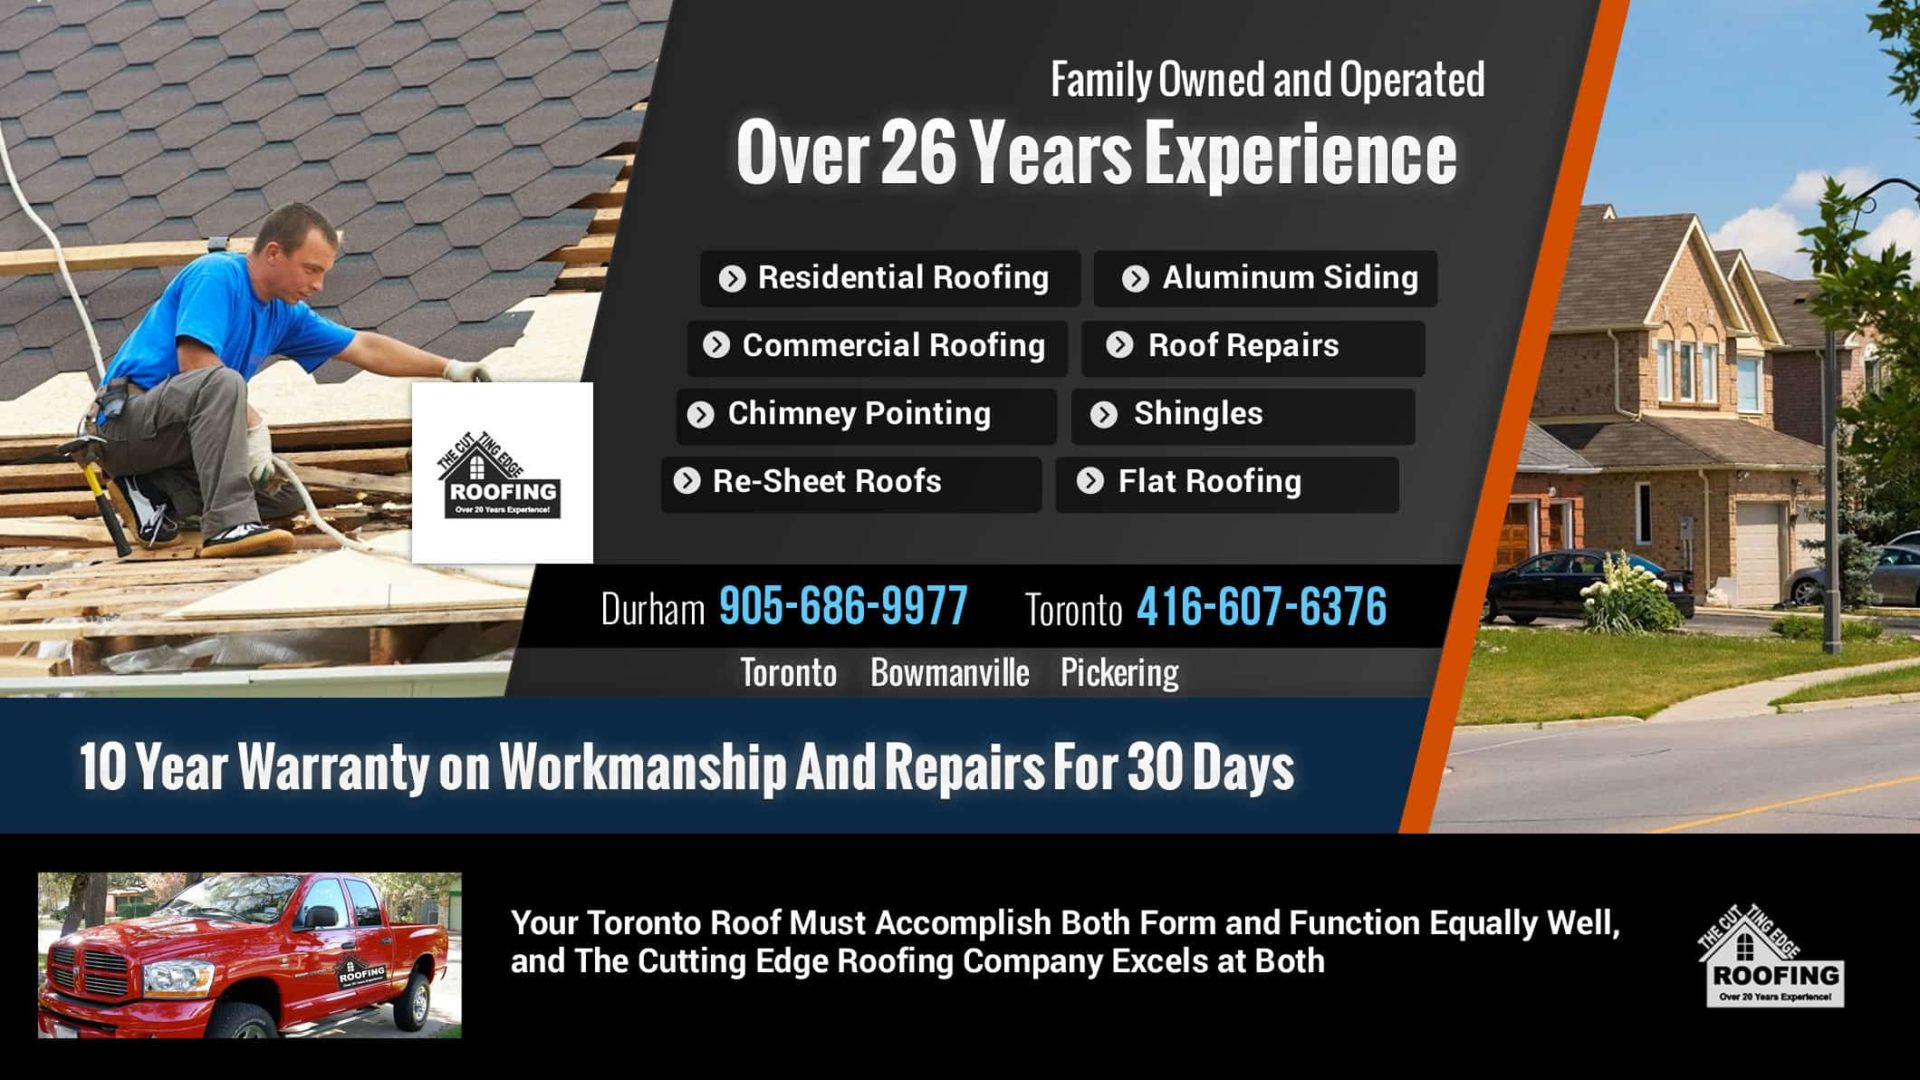 YouTube – The Cutting Edge Roofing